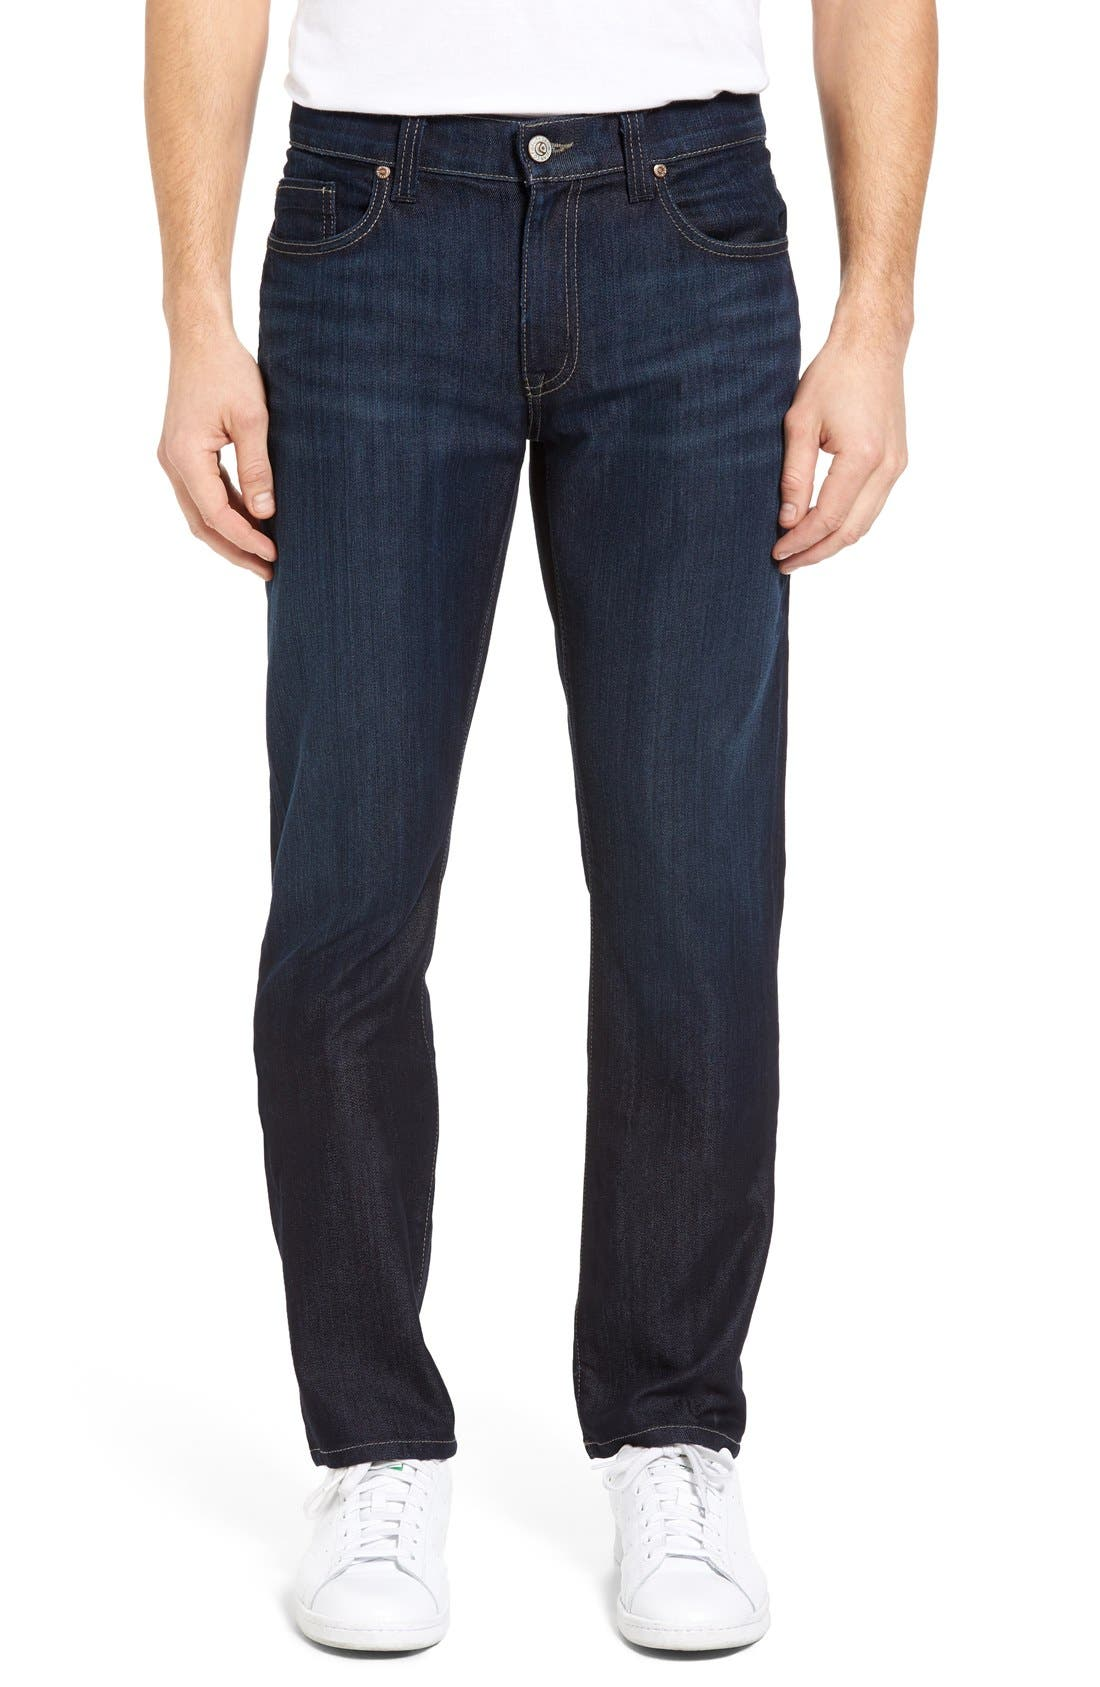 Impala Straight Leg Jeans,                             Main thumbnail 1, color,                             Lunar Blue